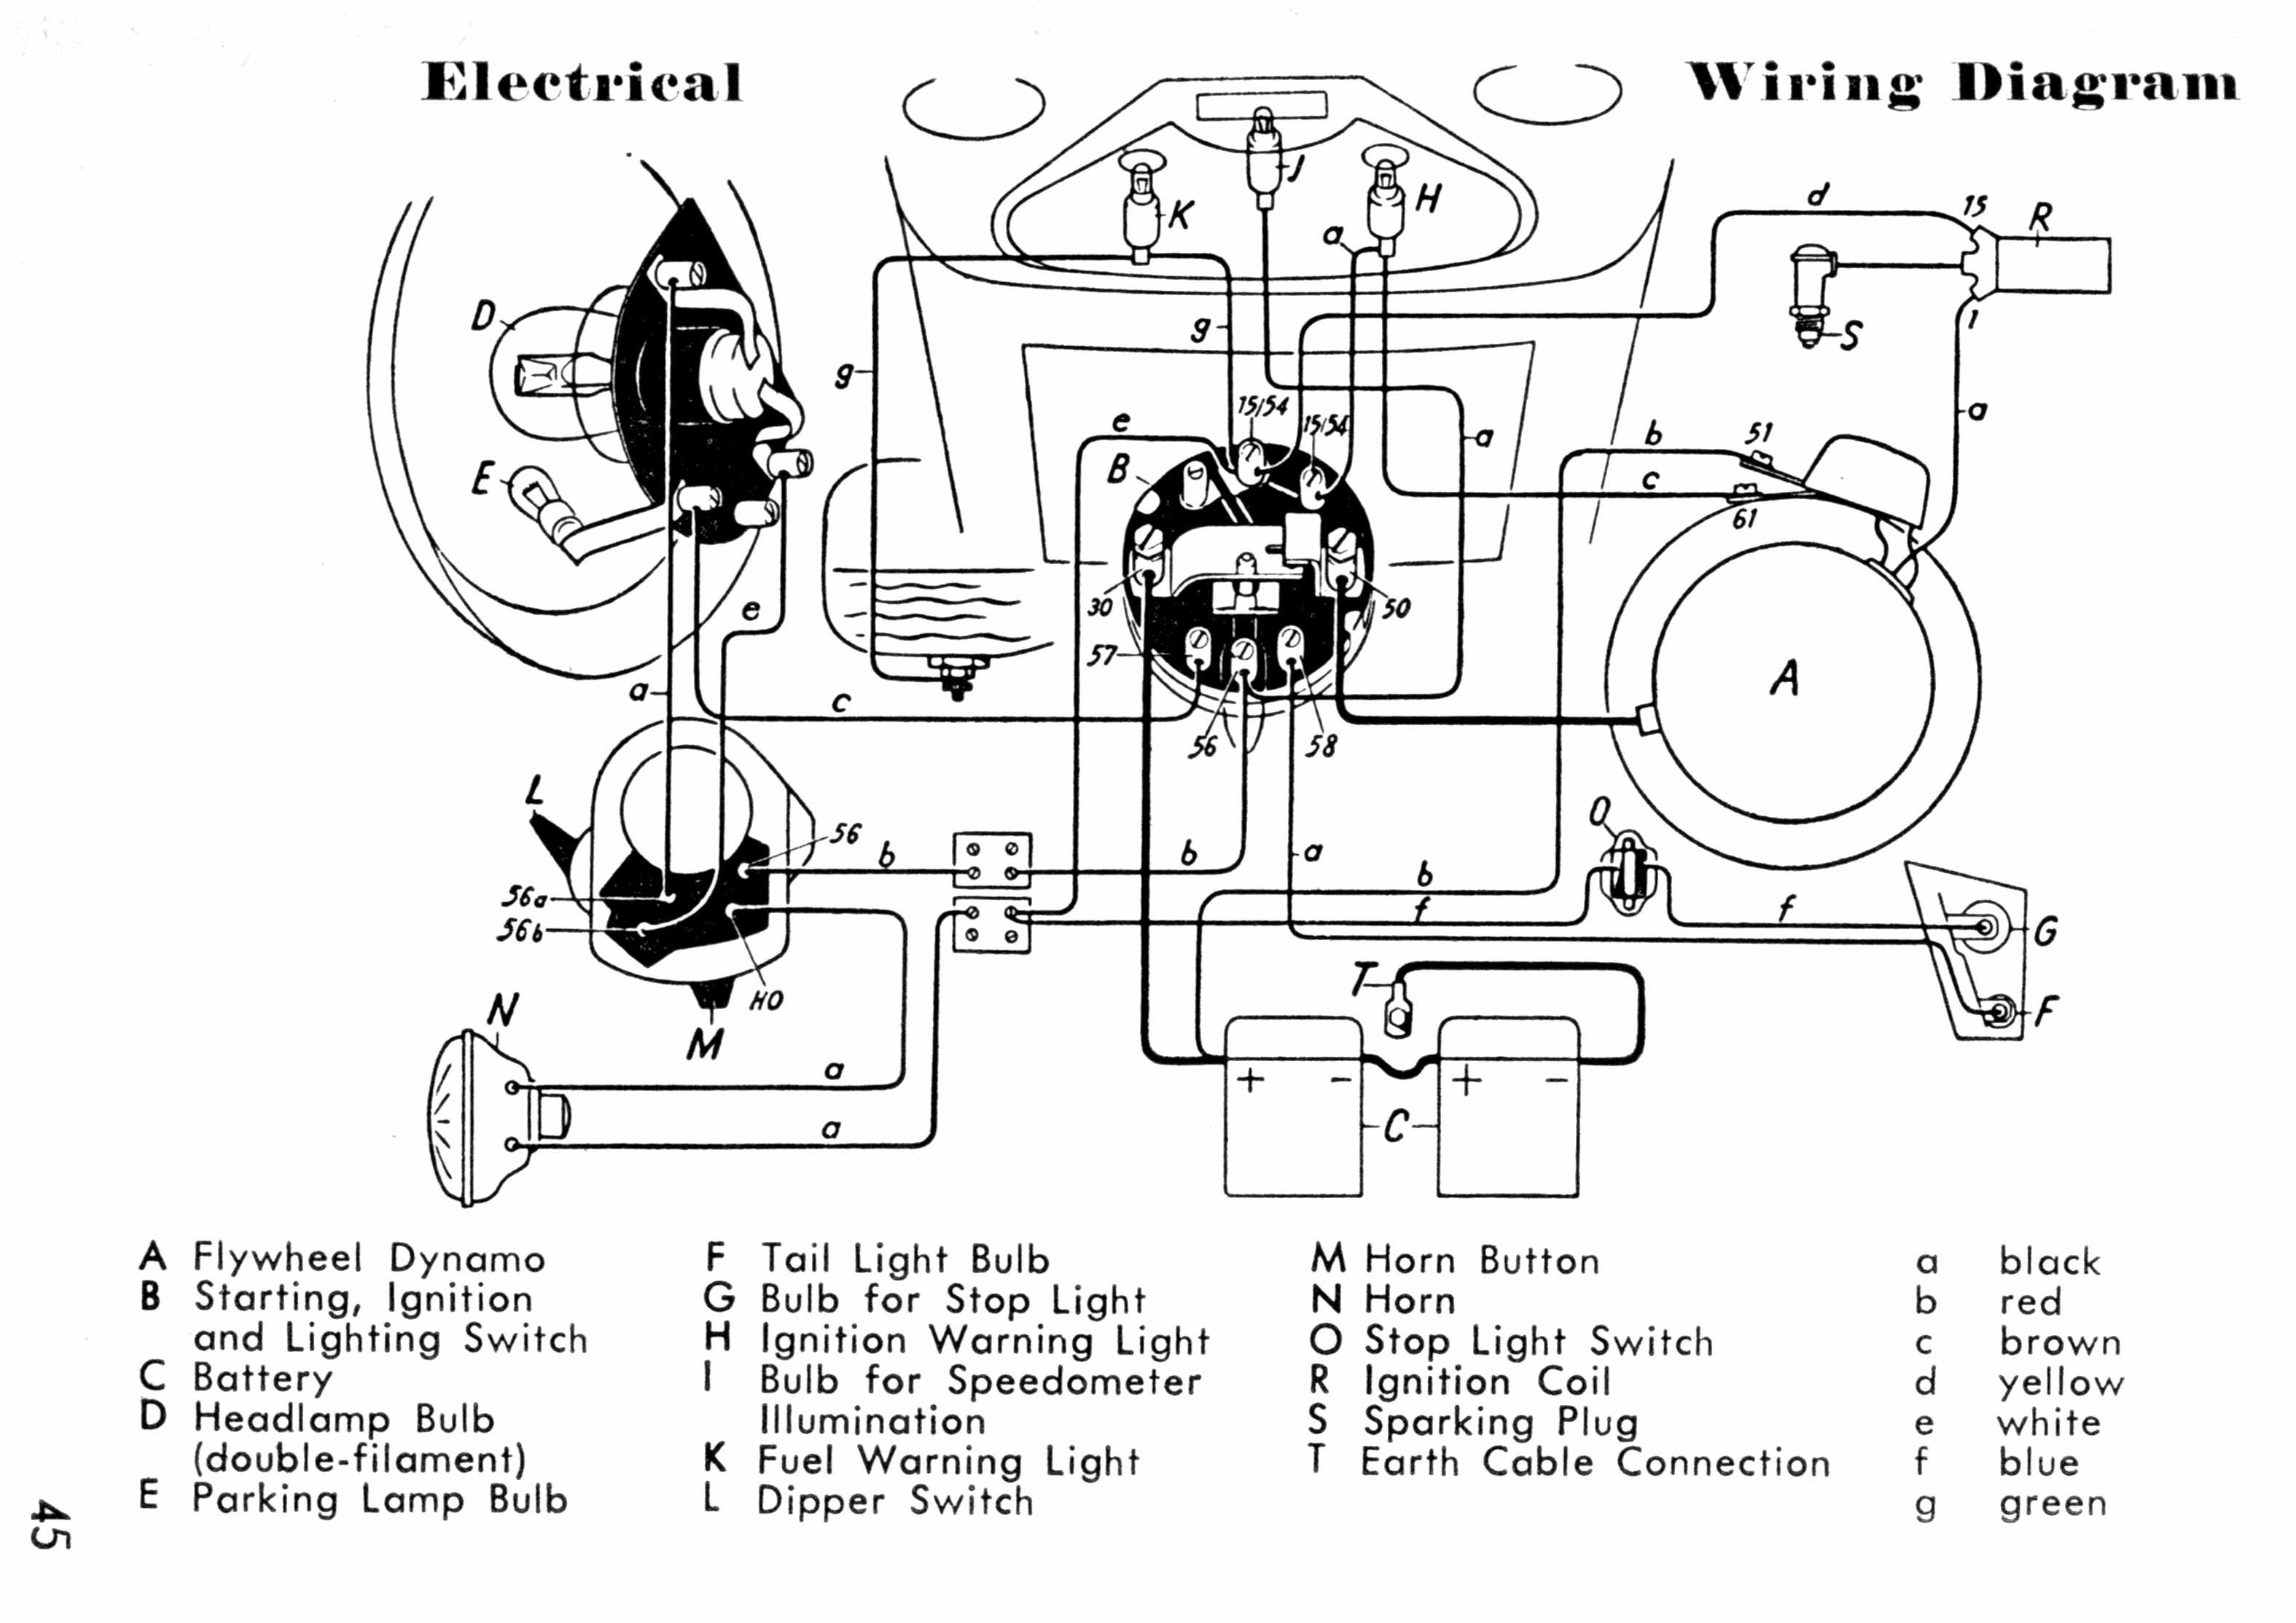 Post Ignition Wiring Diagram Chopper on 4 post solenoid diagram, 4 wheeler wiring diagram, 4 post relay diagram,